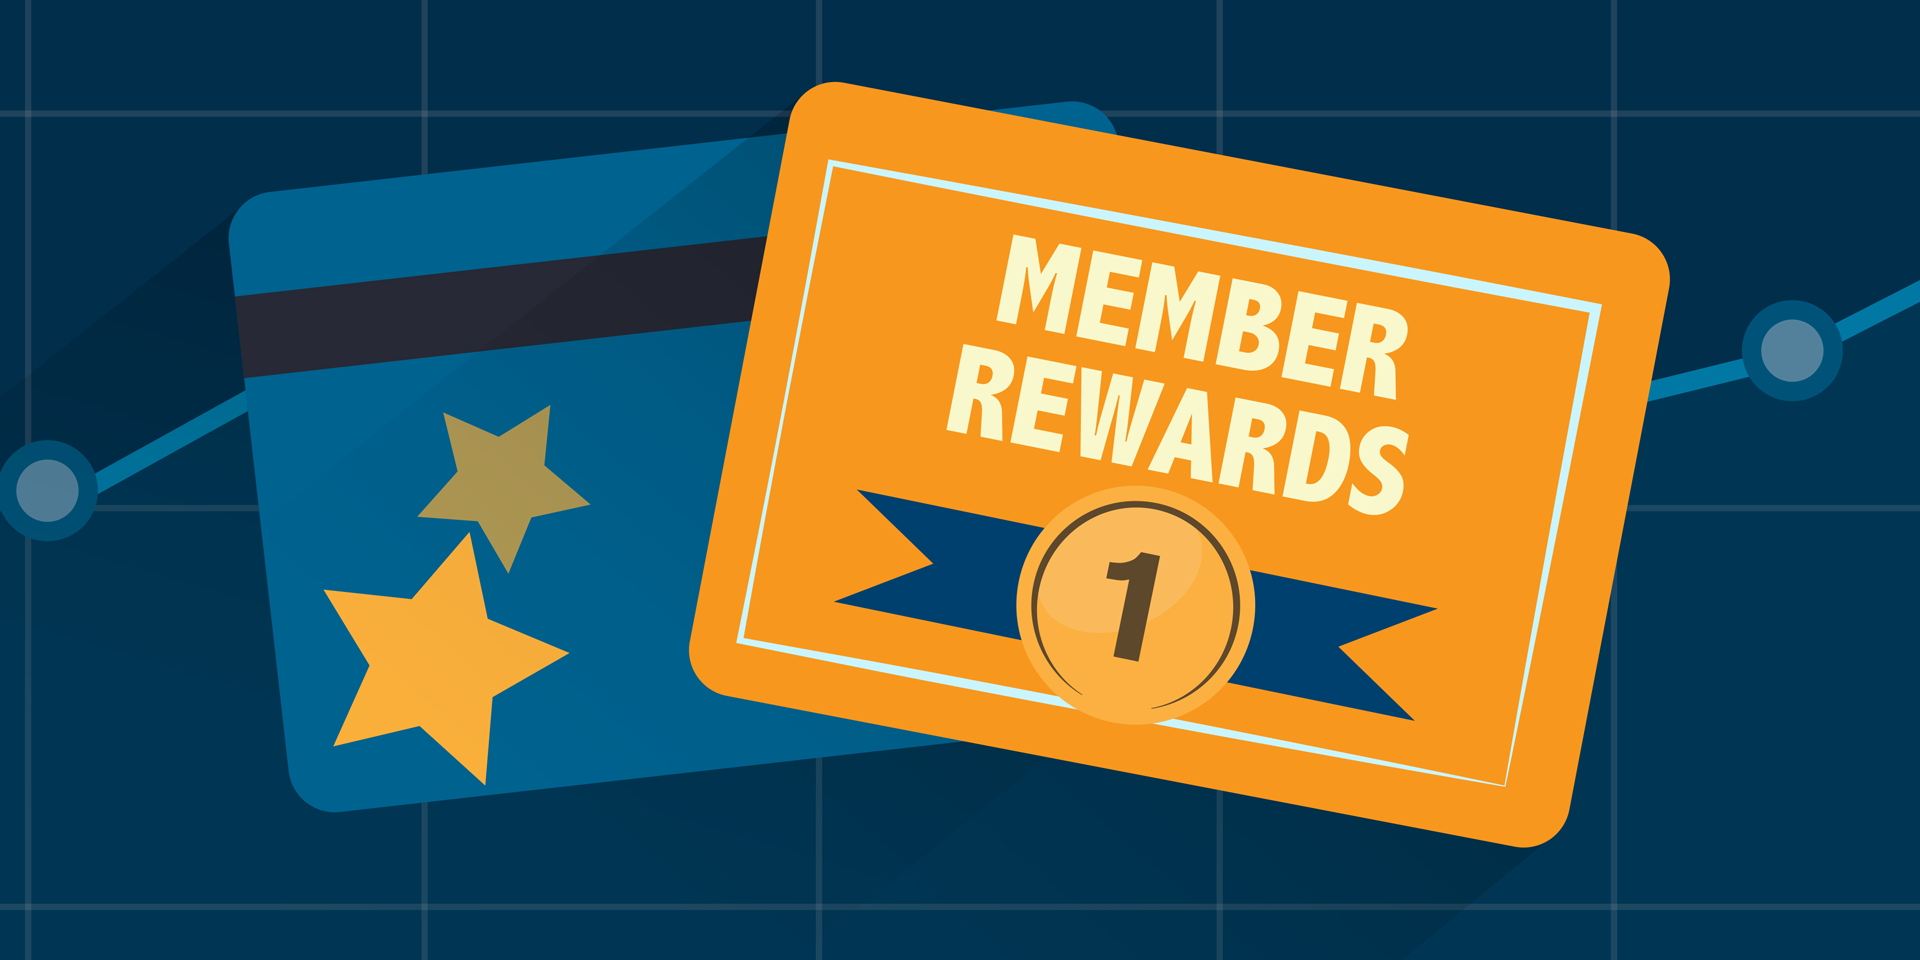 Loyalty programs of world's biggest brands are still growing